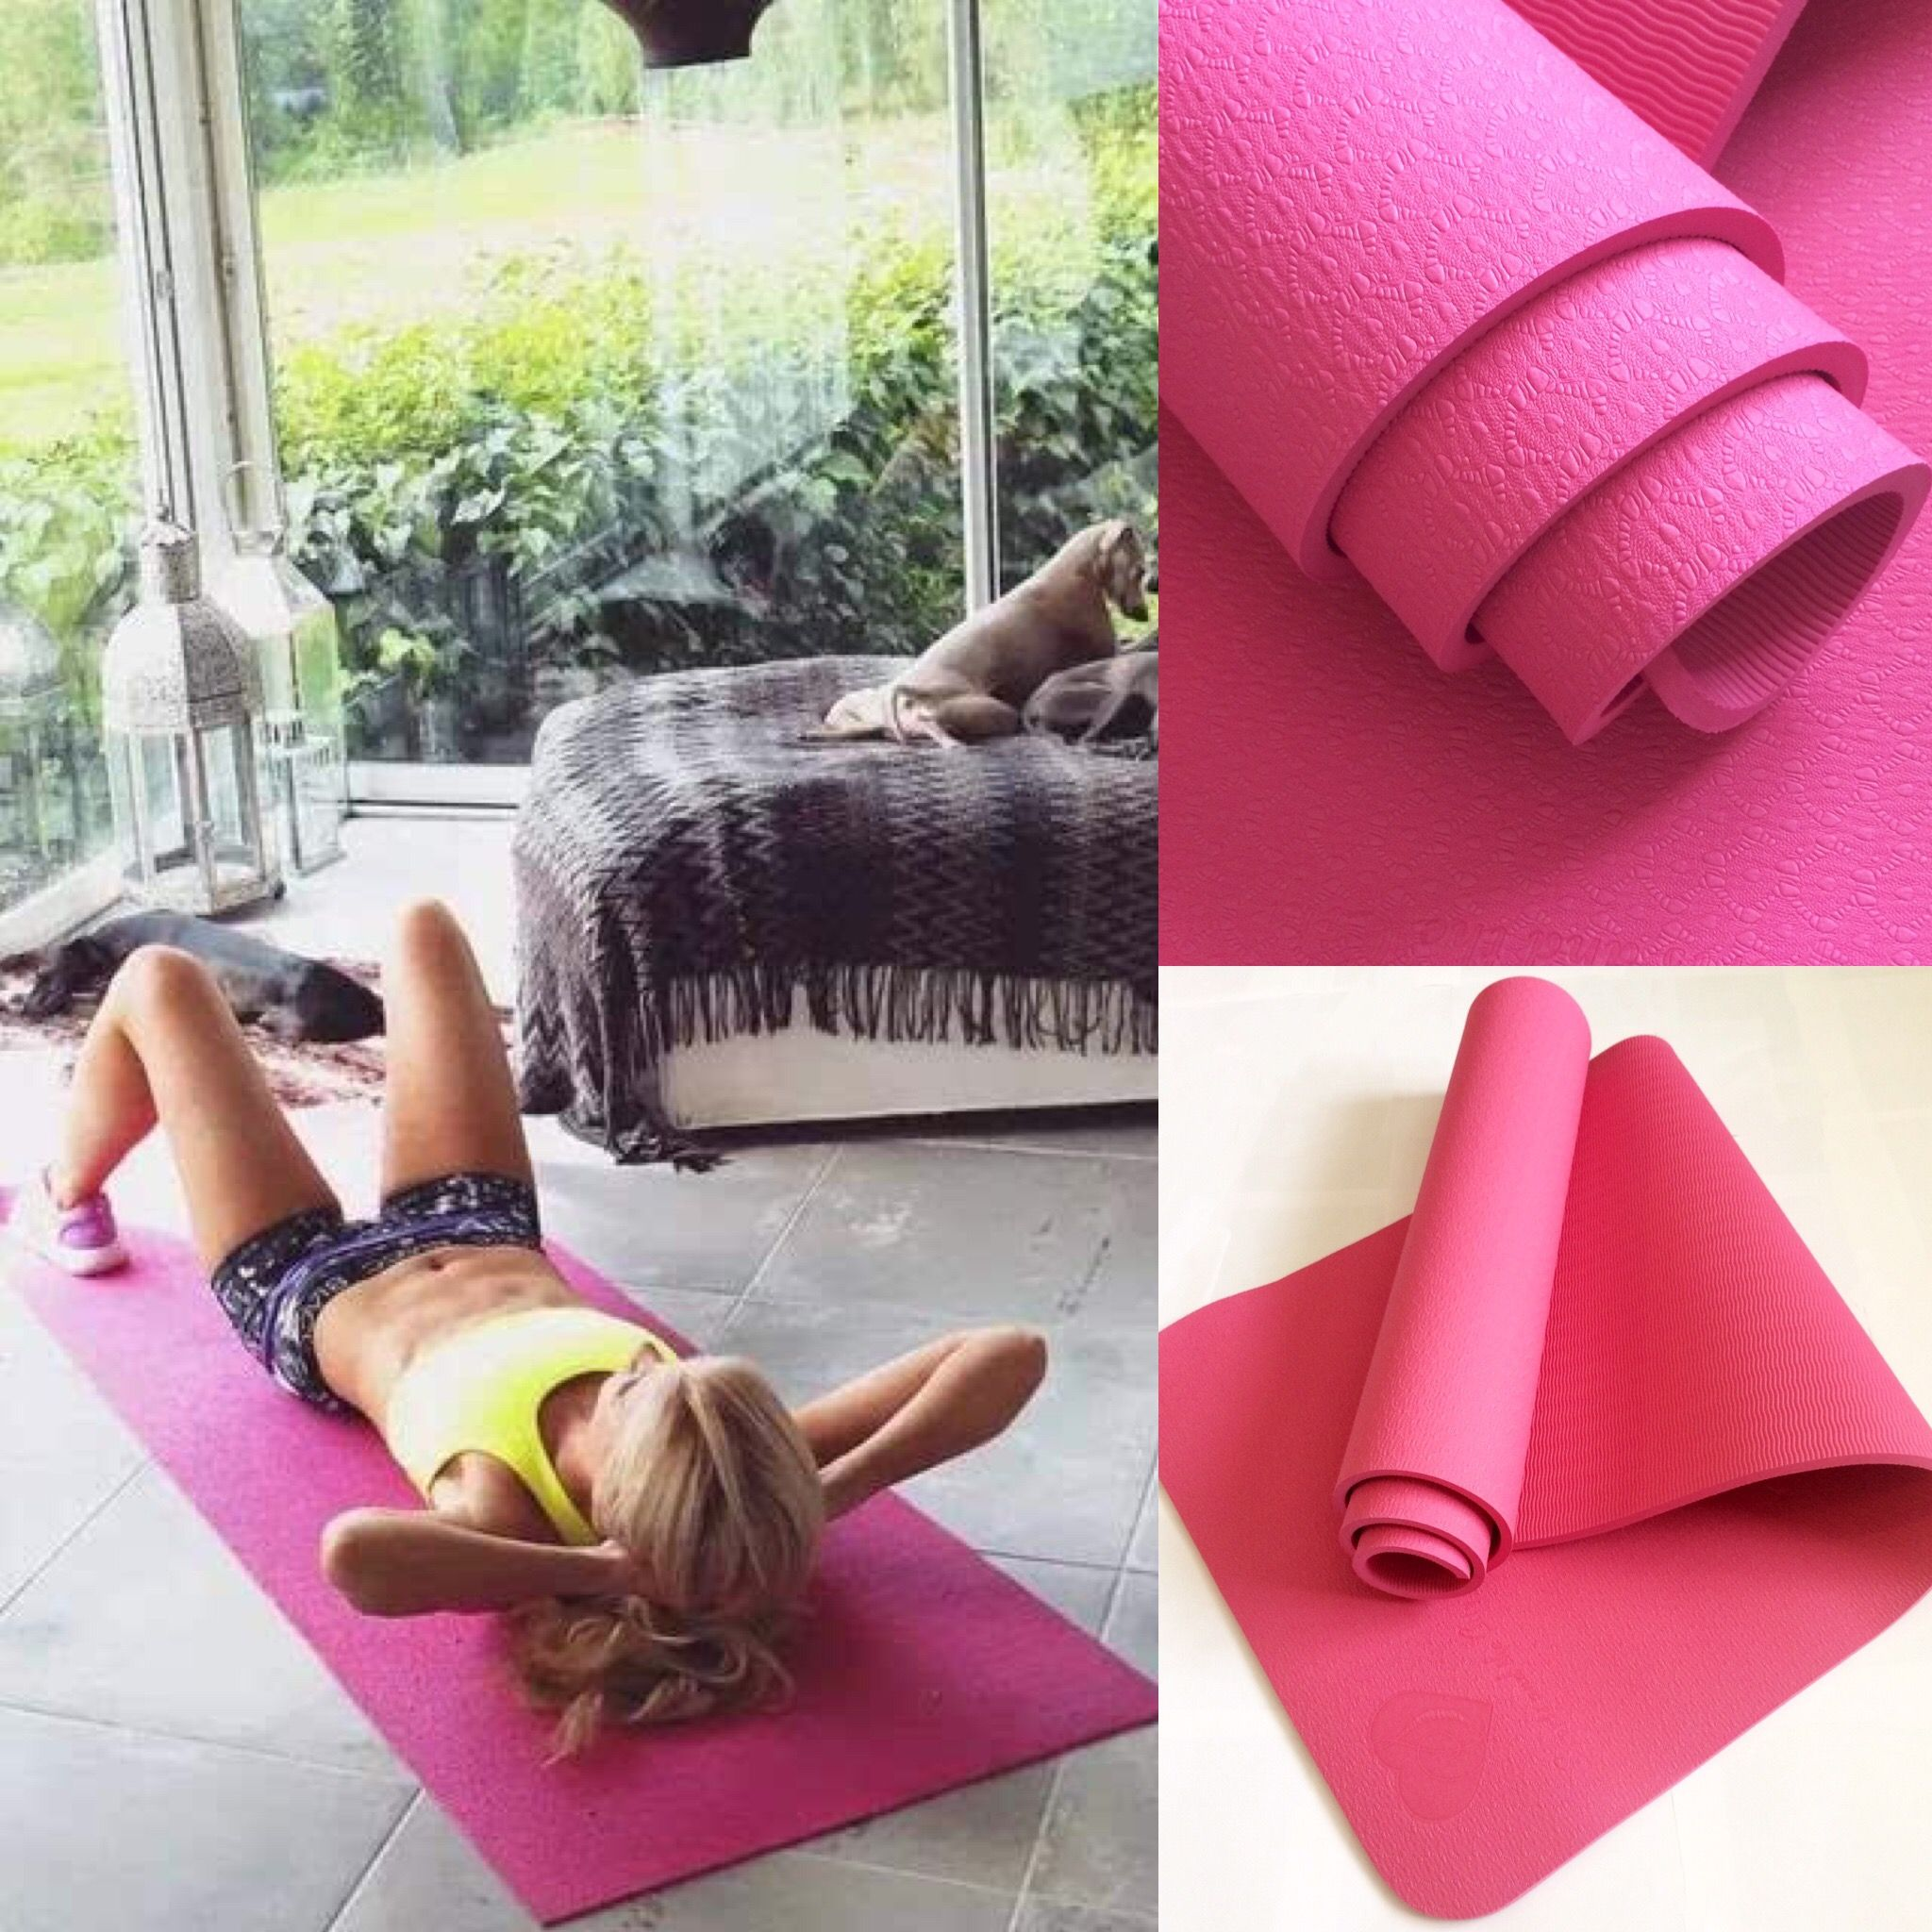 product s mat beginners kit dog manduka yoga thunder mats welcome upward brands beginner